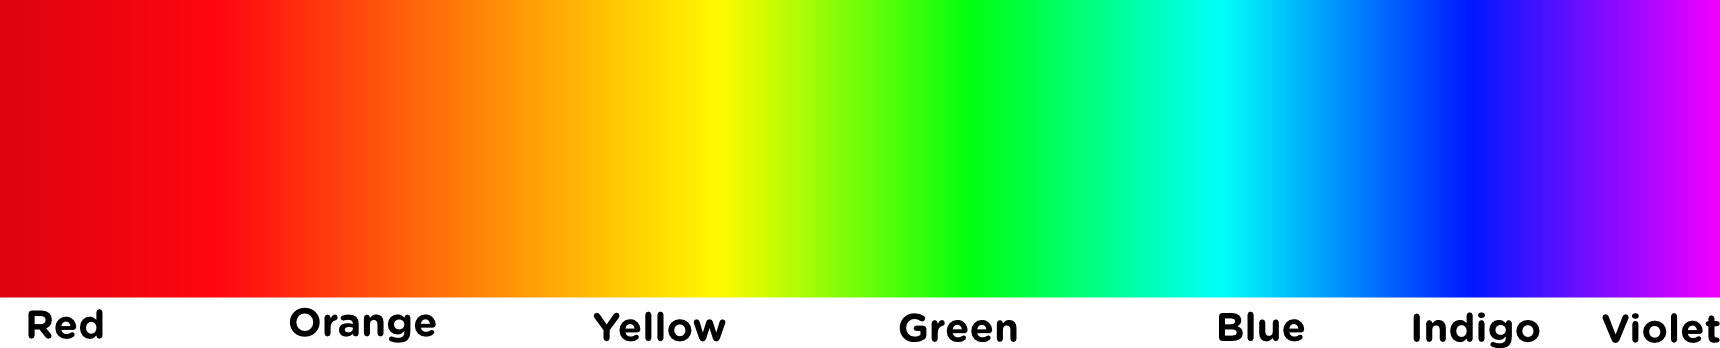 Colours_of_the_visible_light_spectrum